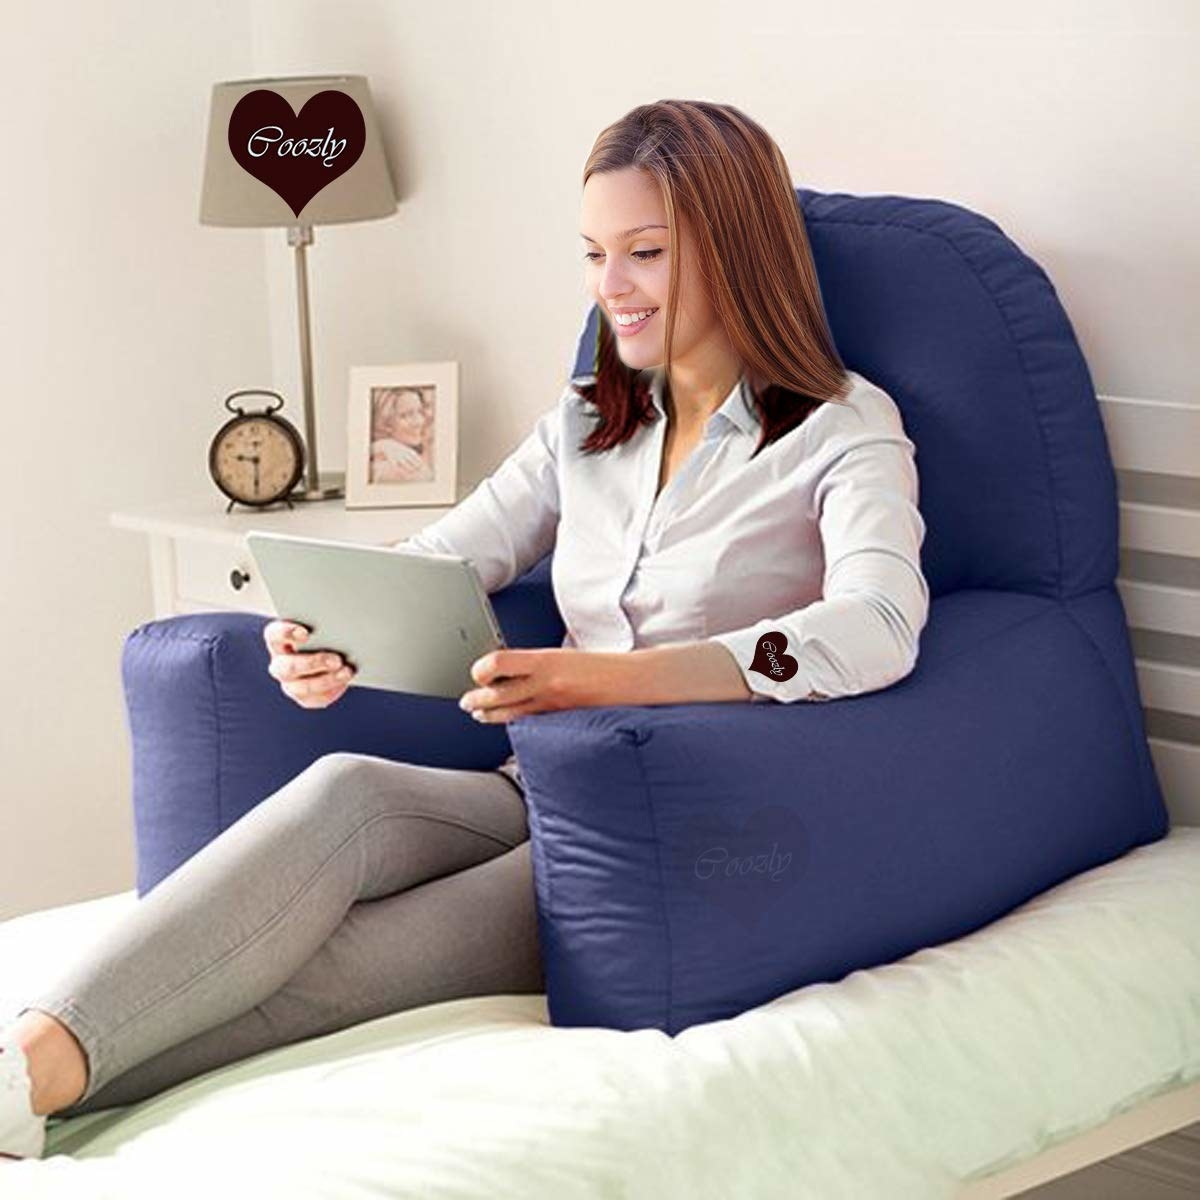 A person sitting on a bed with the bear hug pillow behind them, reading something on a tablet